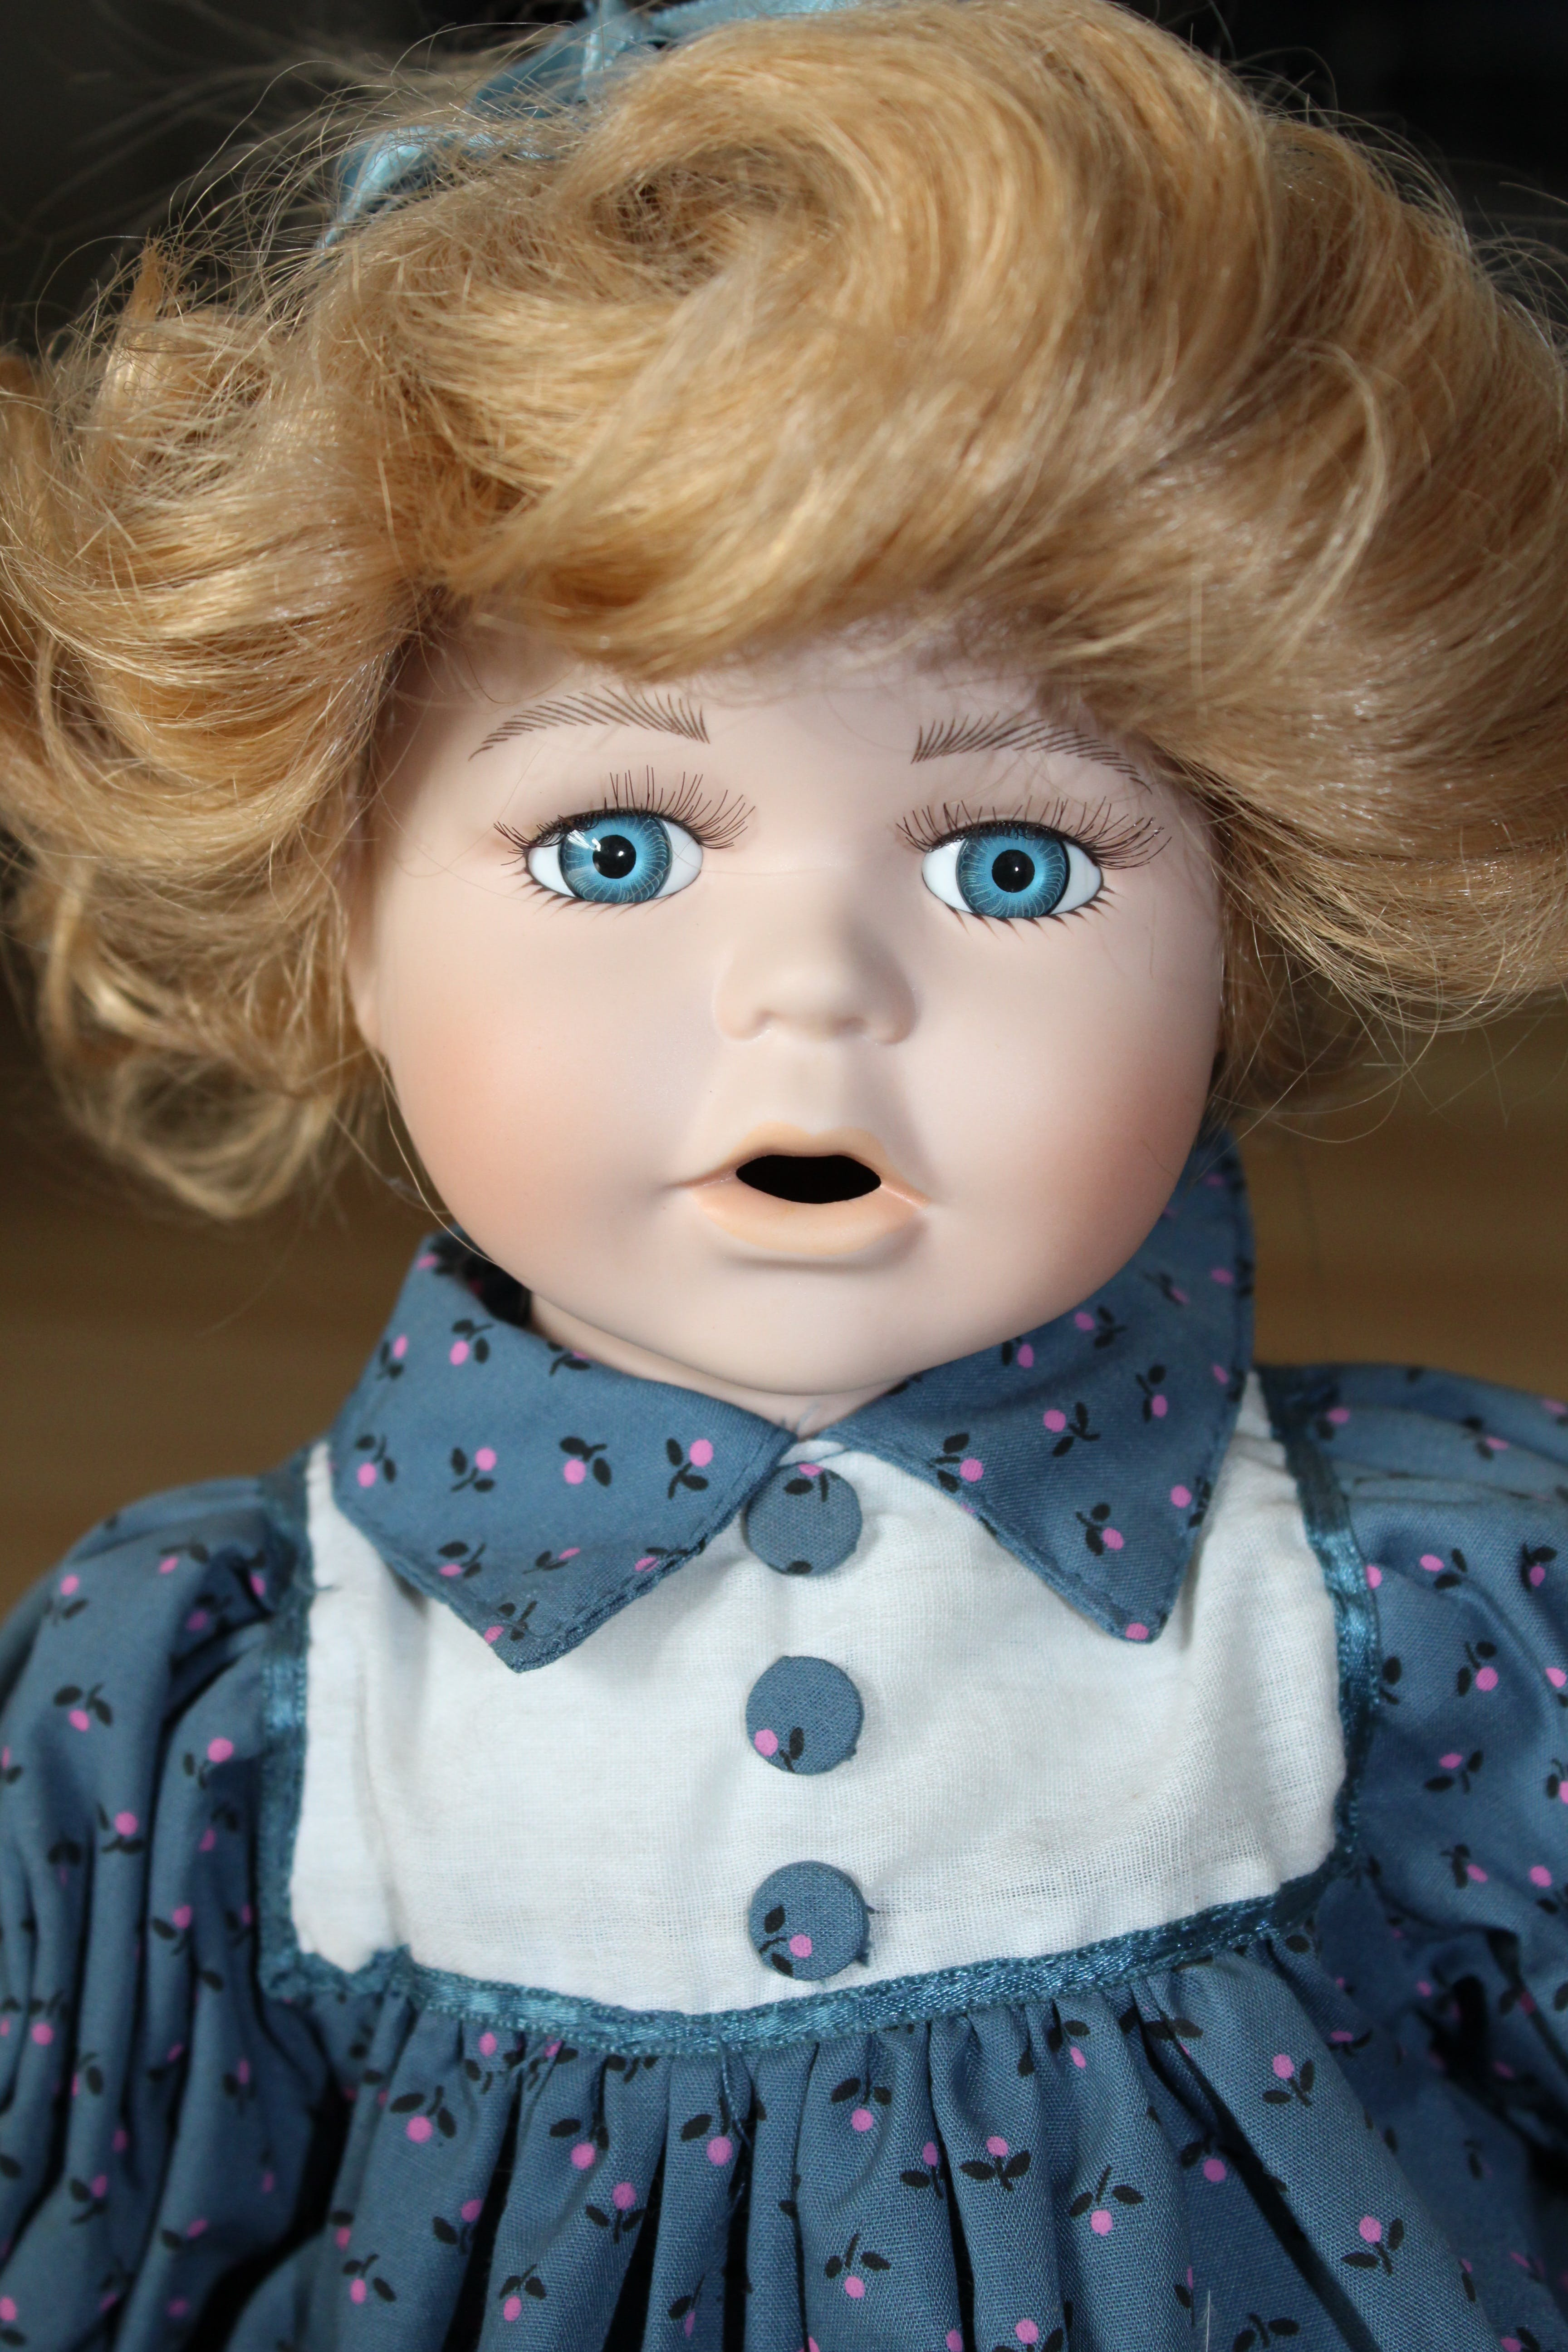 Doll on Blue Floral Polo Dress